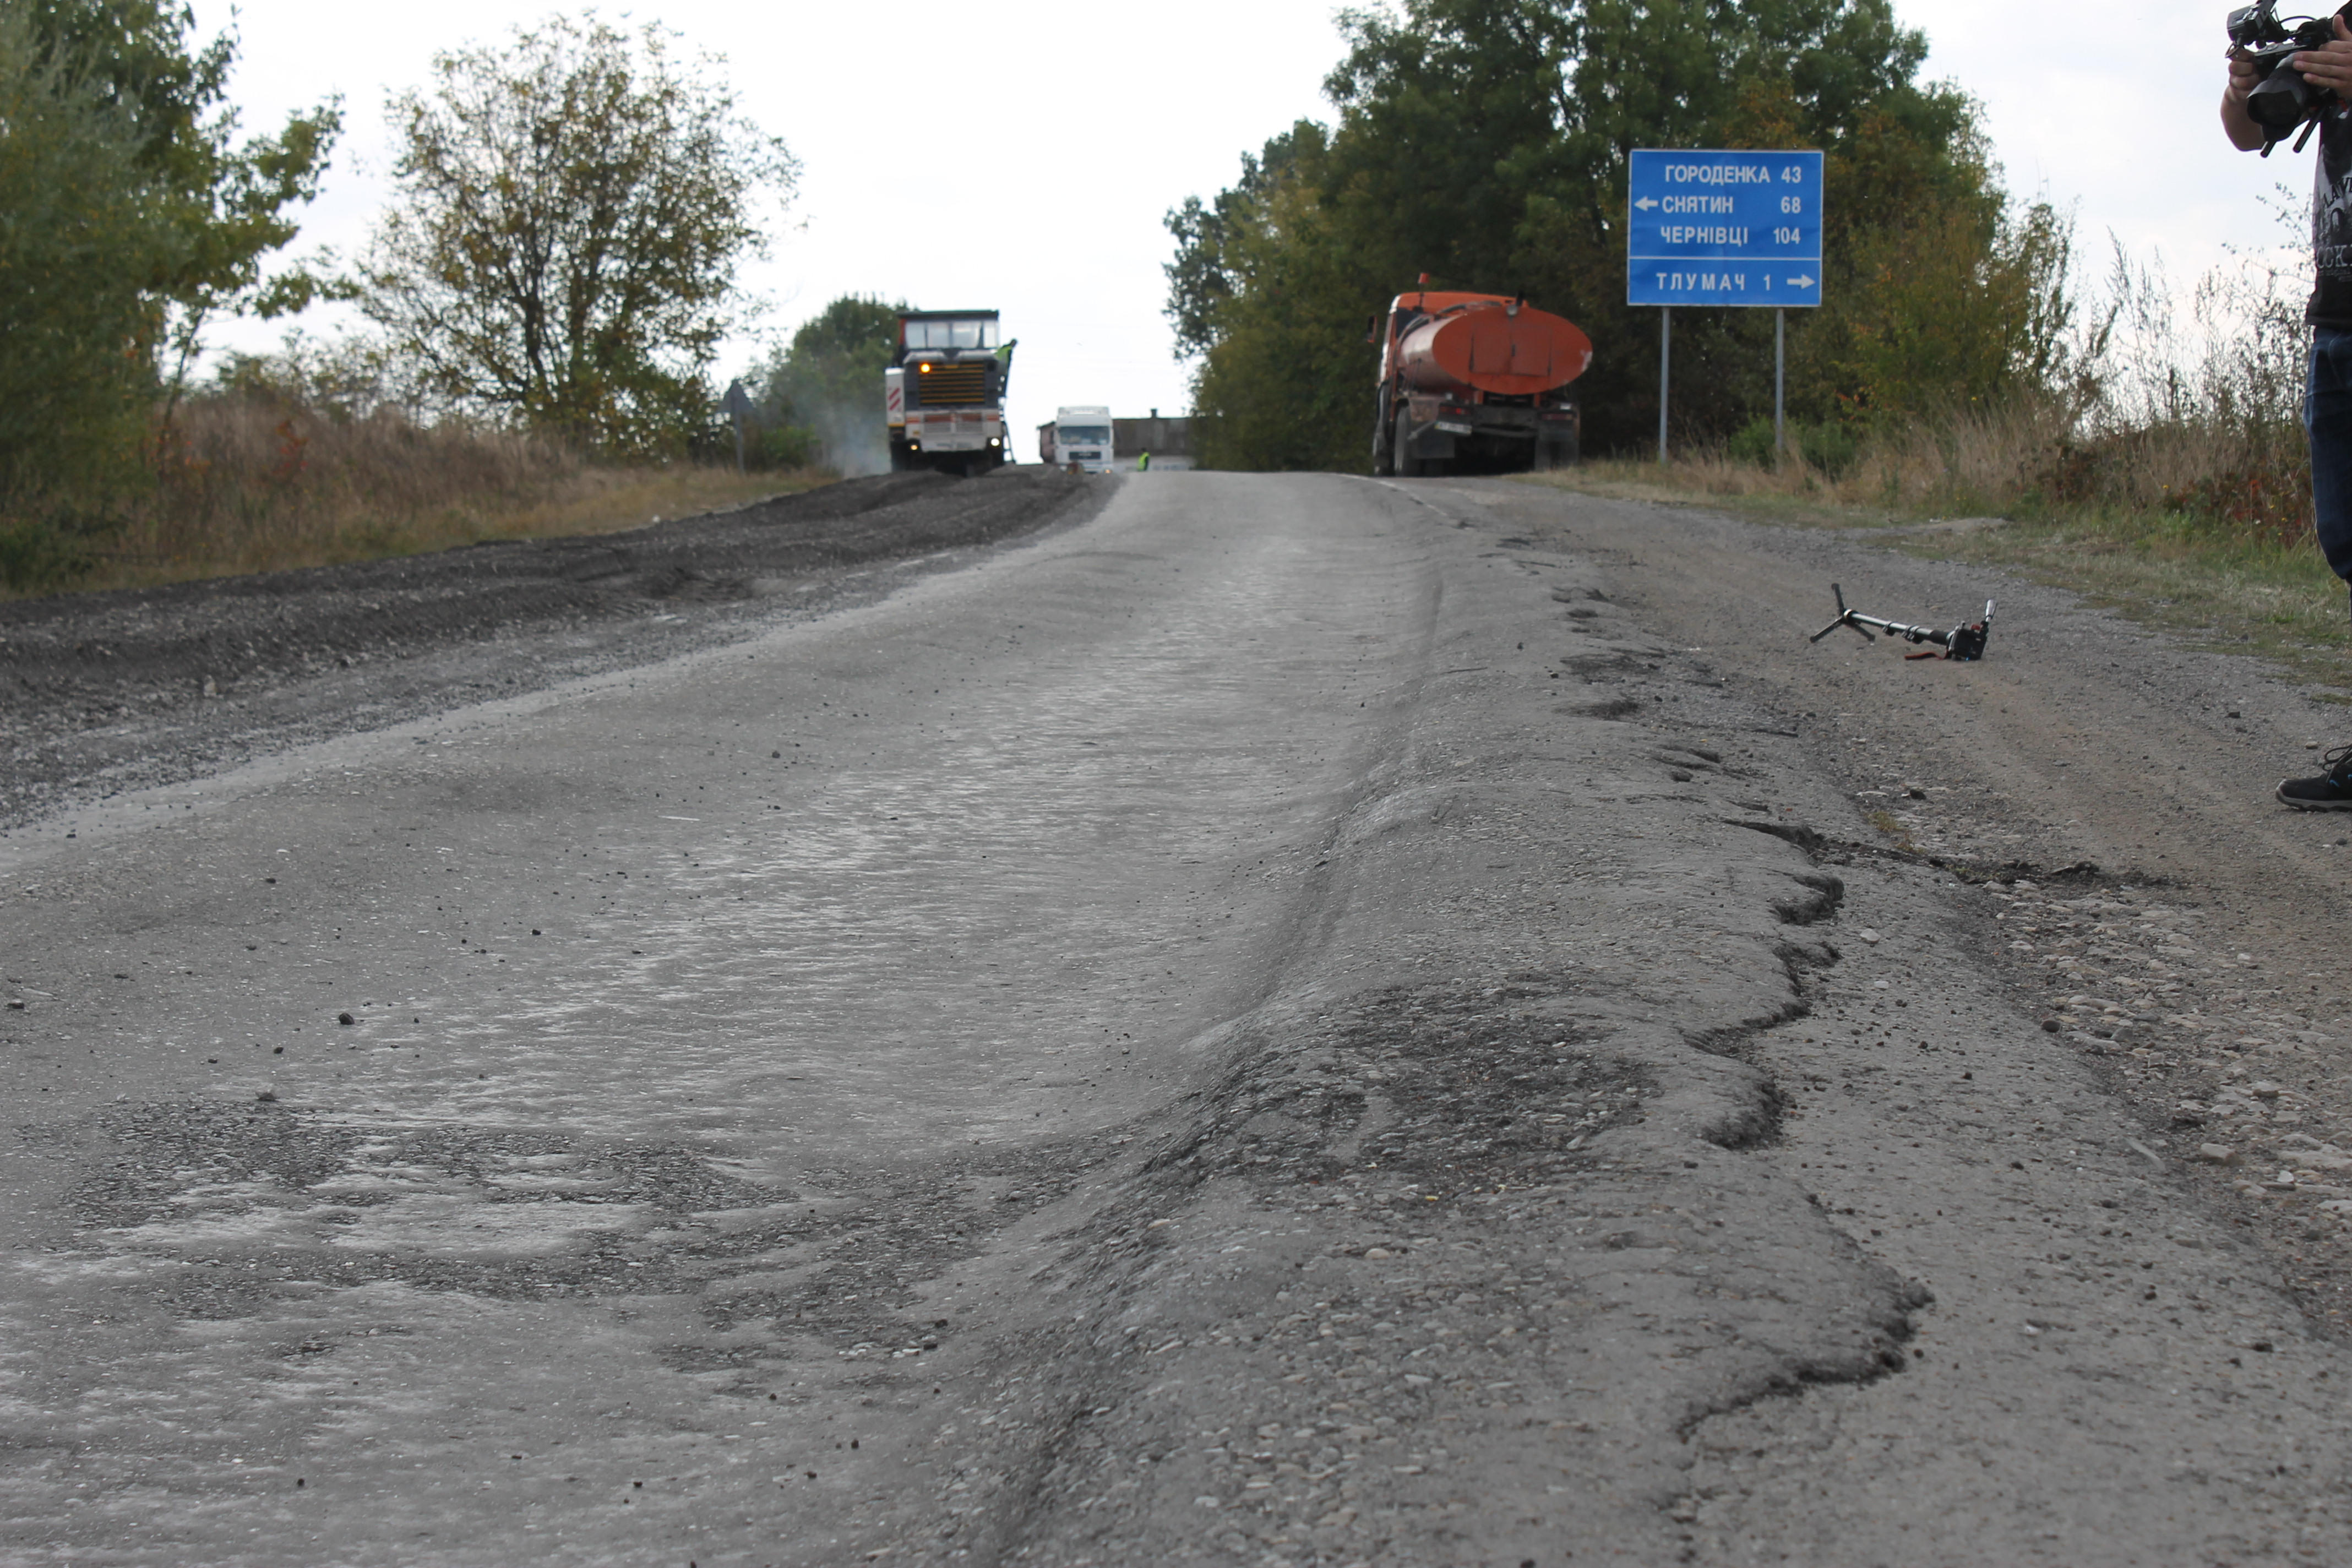 Tlumach detour road is being repaired